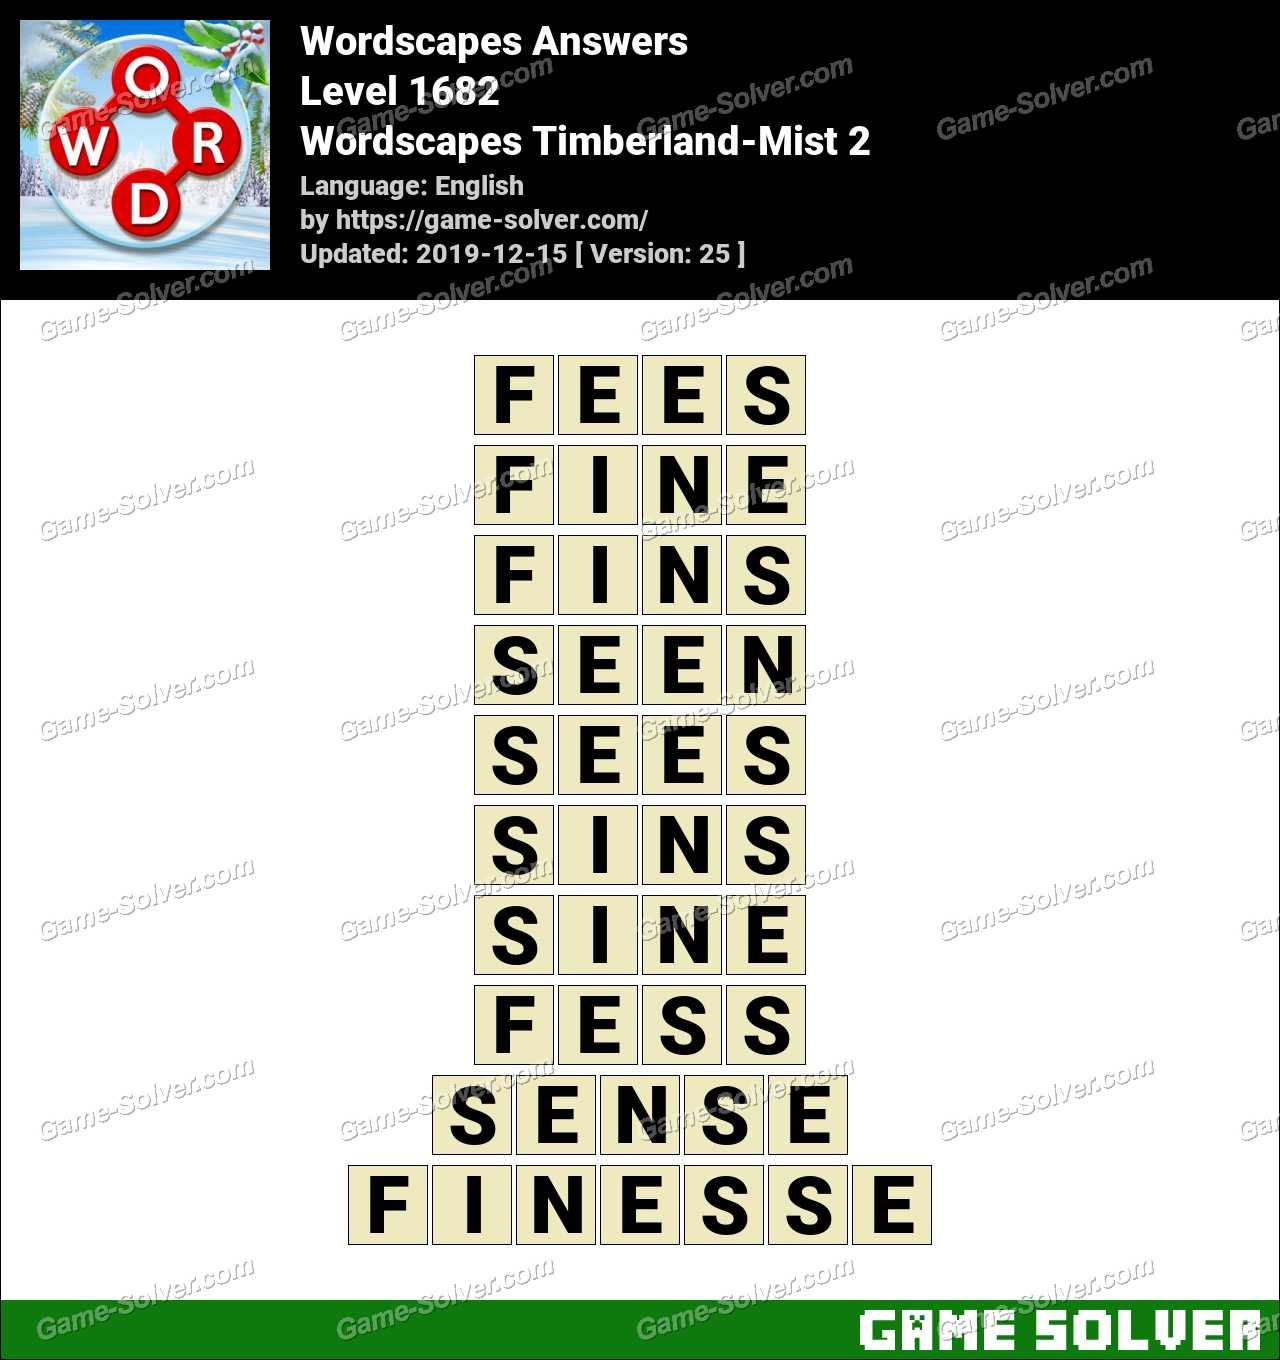 Wordscapes Timberland-Mist 2 Answers